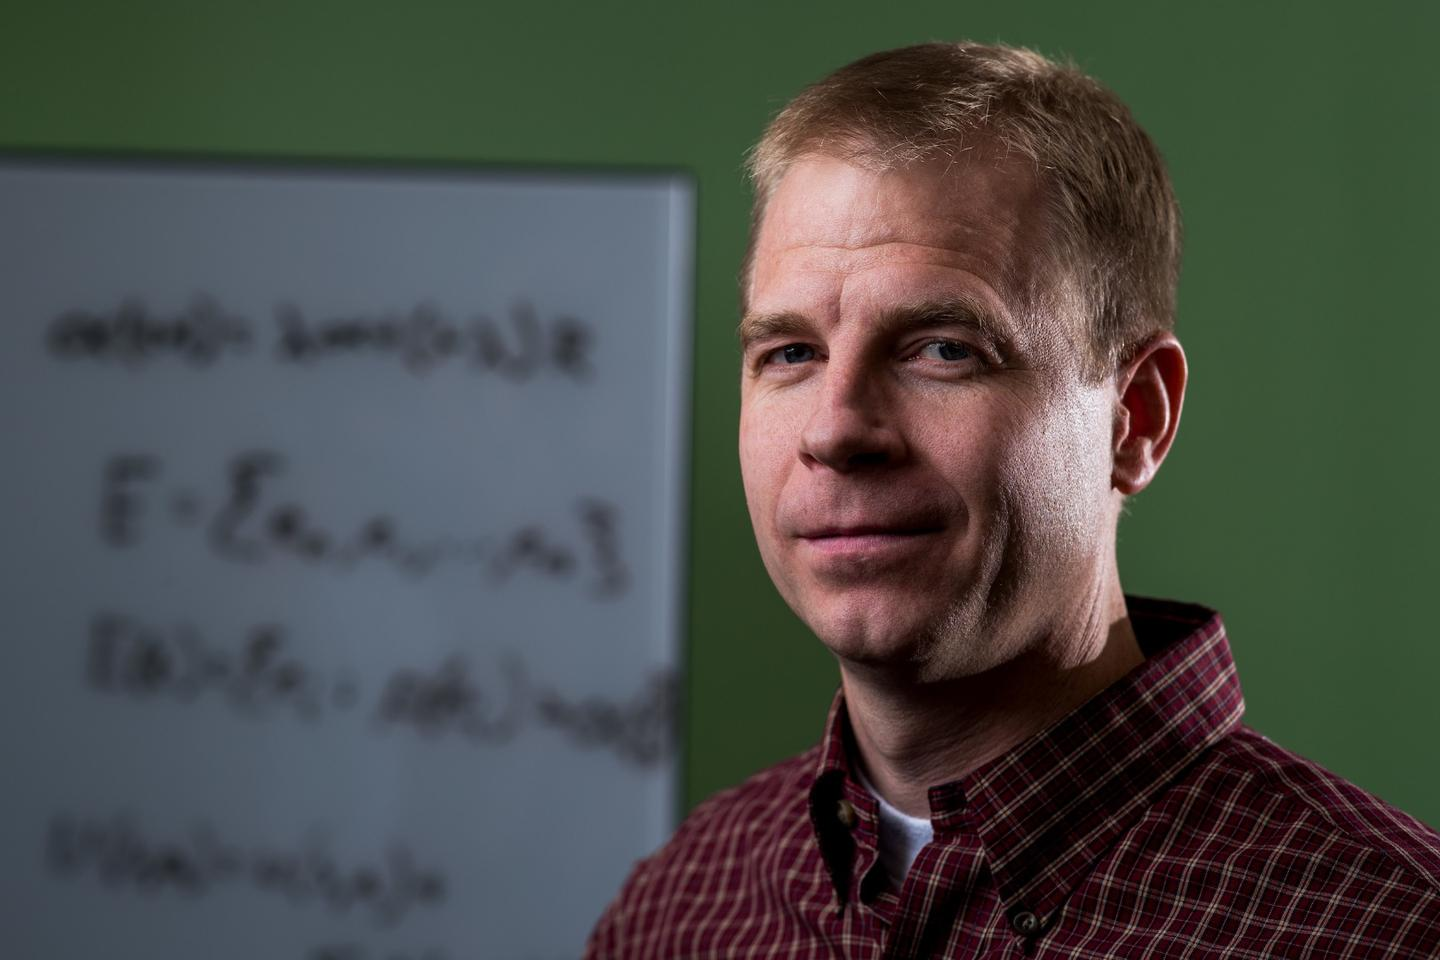 BYU computer science professor Jacob Crandall